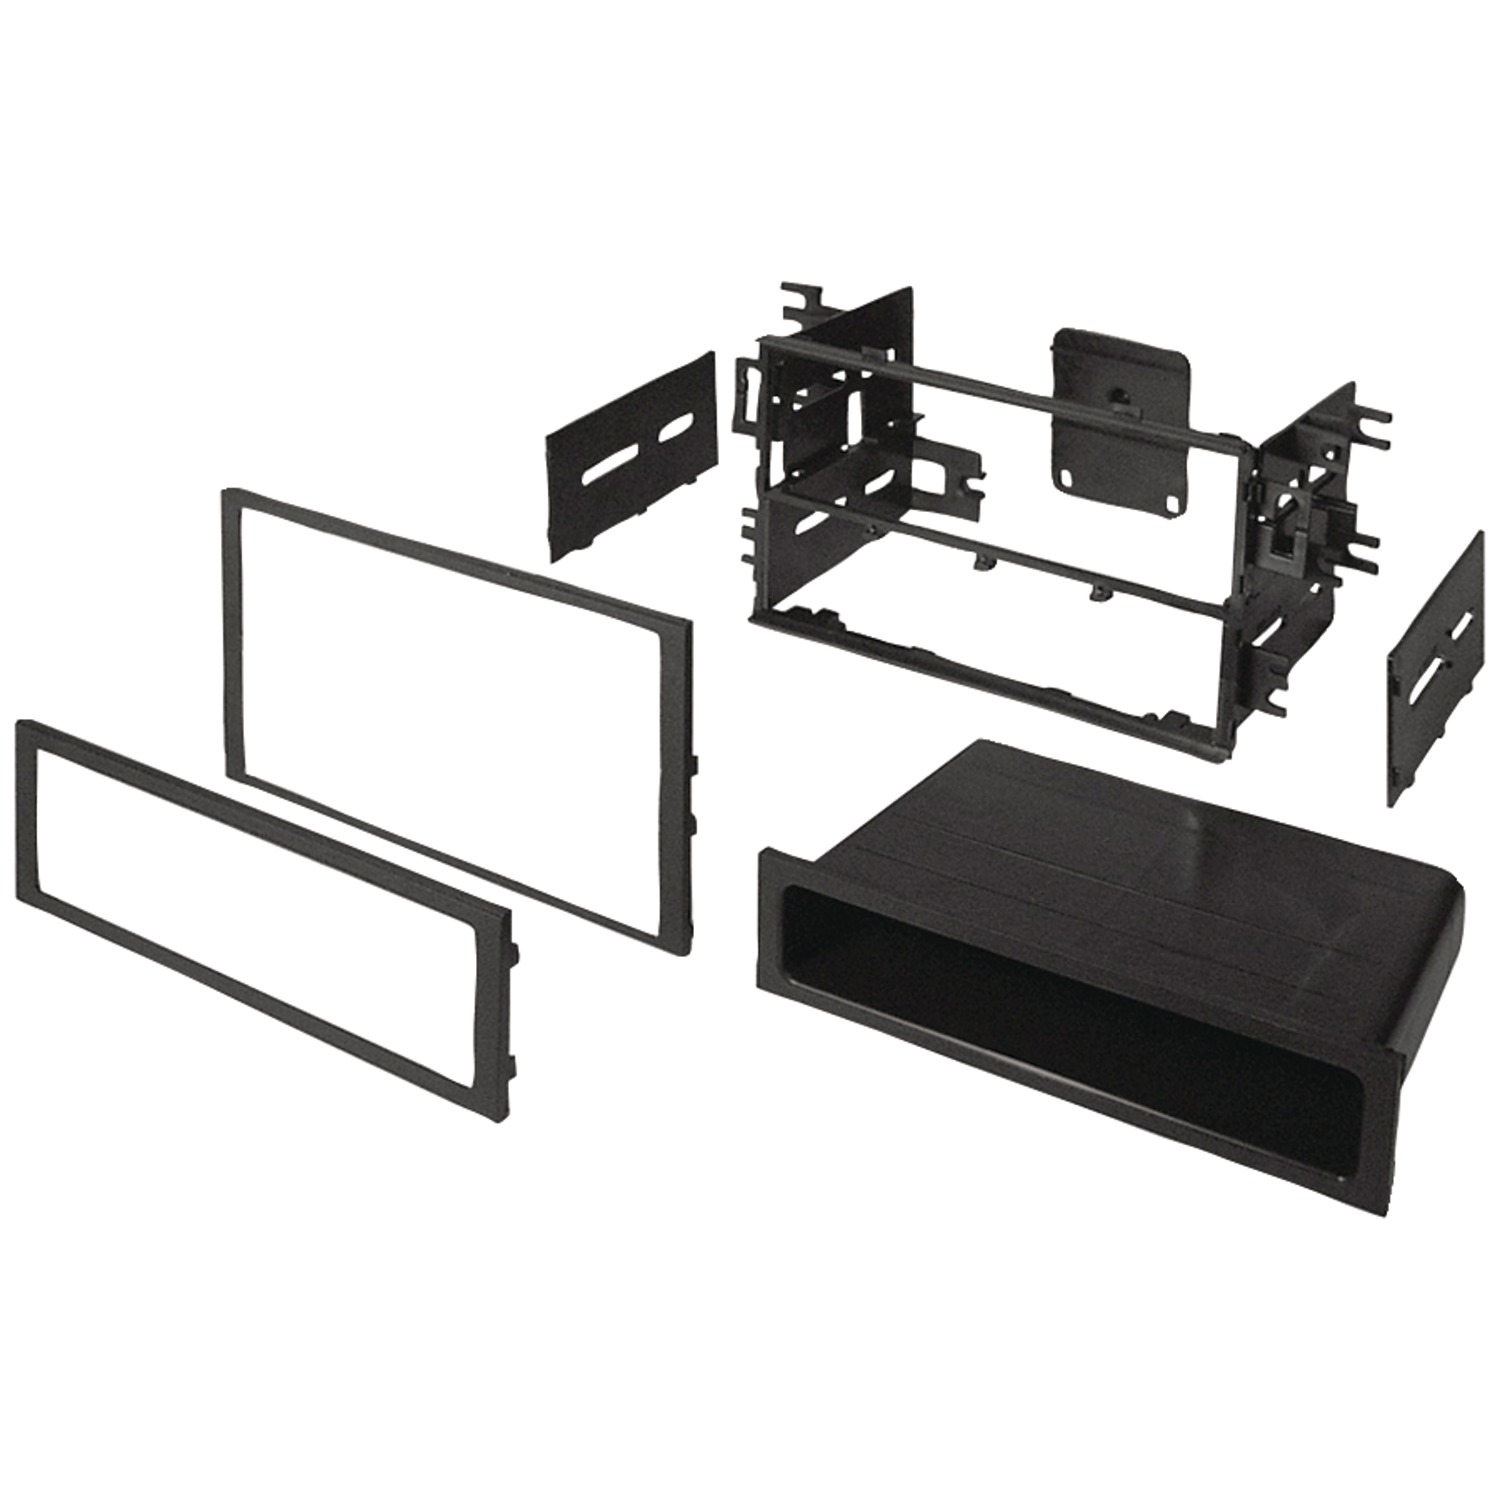 Best Kits BKHONK830 In-Dash Installation Kit (Honda/Acura 1986 and up Double-DIN/Single-DIN with Pocket)